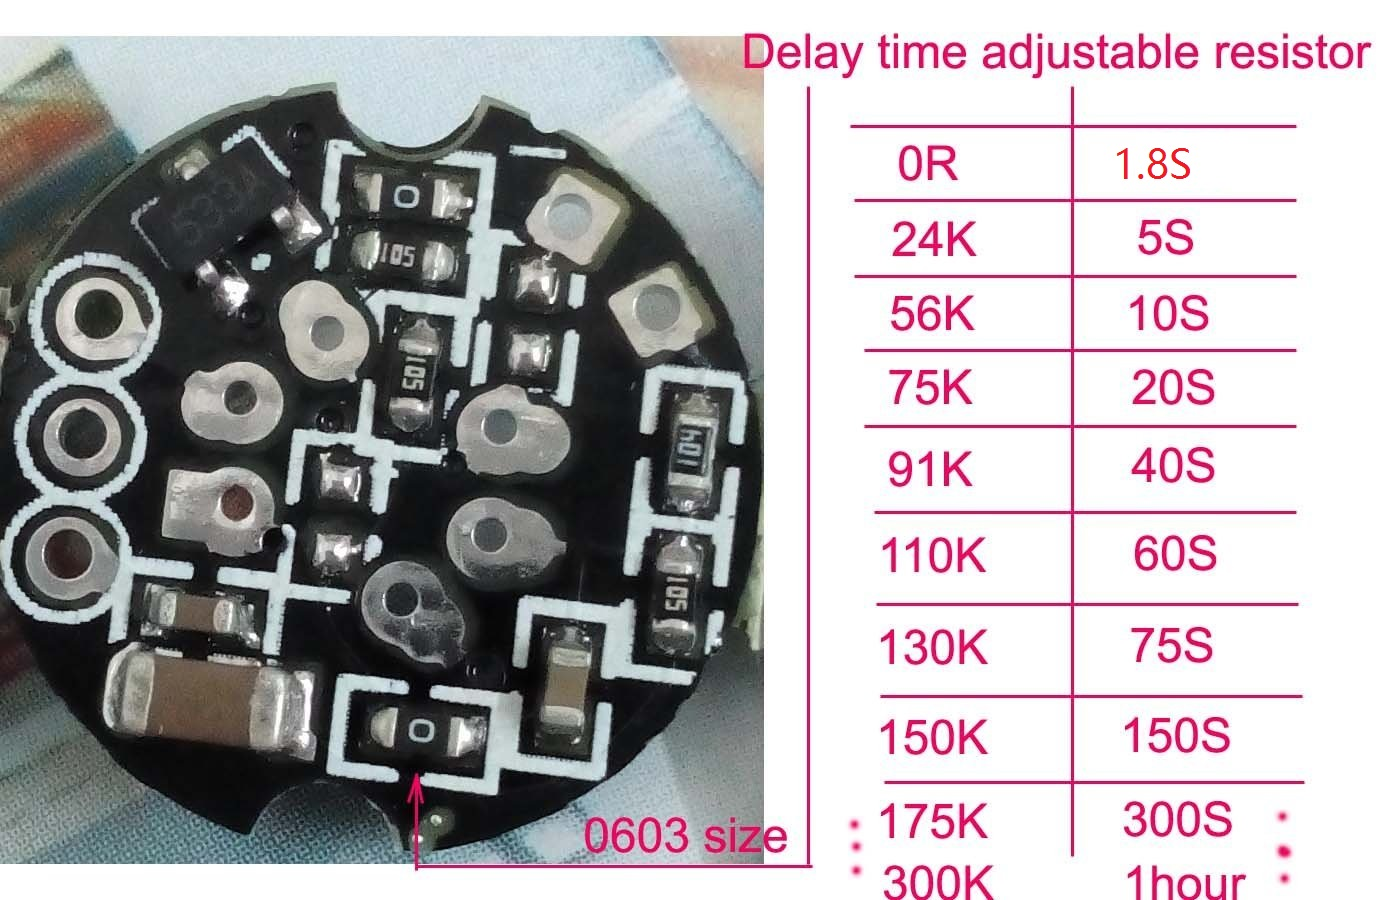 dwmzone-dwm-pm-6-20ua-lowest-standby-current-18s-to-1hour-delay-time-mini-infrared-pir-module-delay-time-low-delay-time-1.8S